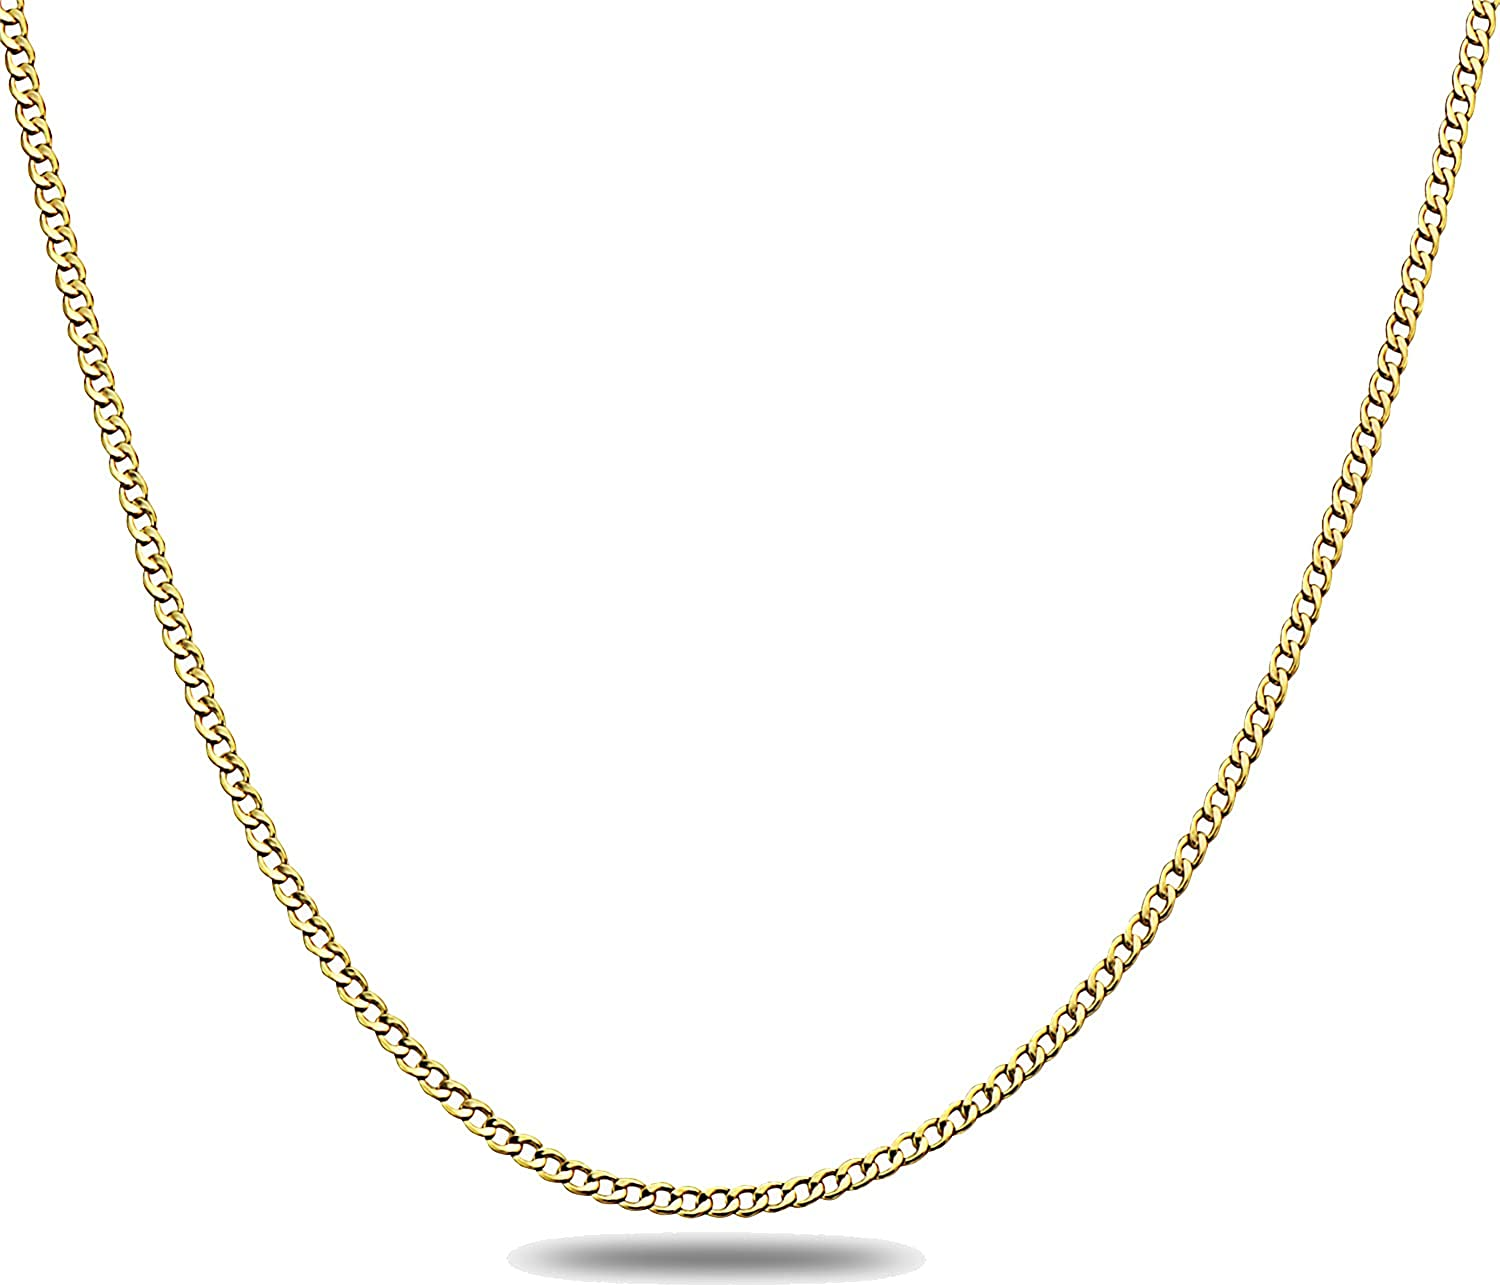 14K Gold 2.0mm Cuban/Curb Link Chain Necklace- 16-30- Yellow, White, Two Tone Or Rose Gold